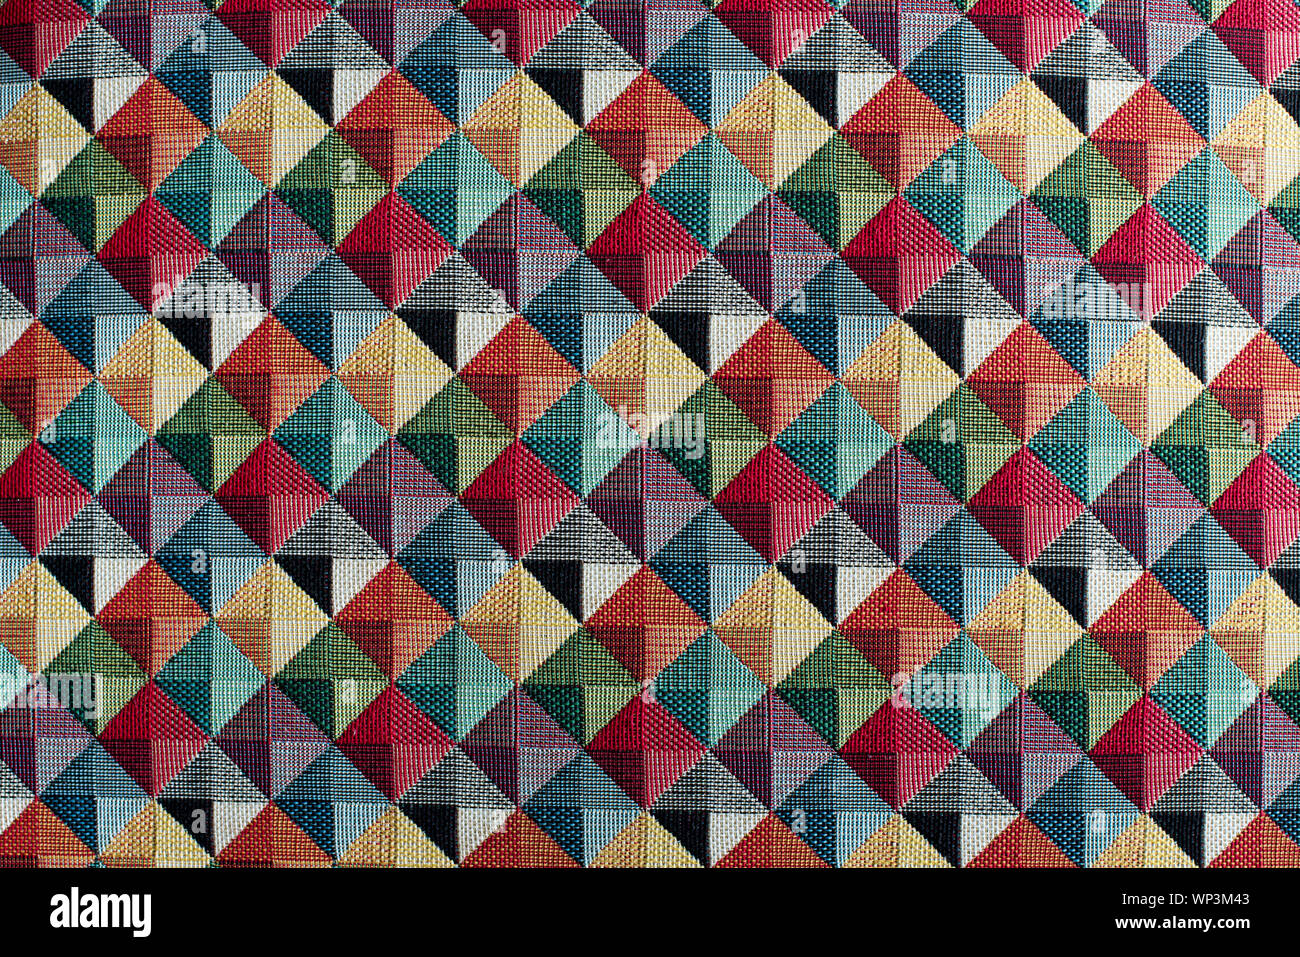 Geometric multicolored textile background pattern in a full frame view of diamond or square shapes with color shading Stock Photo